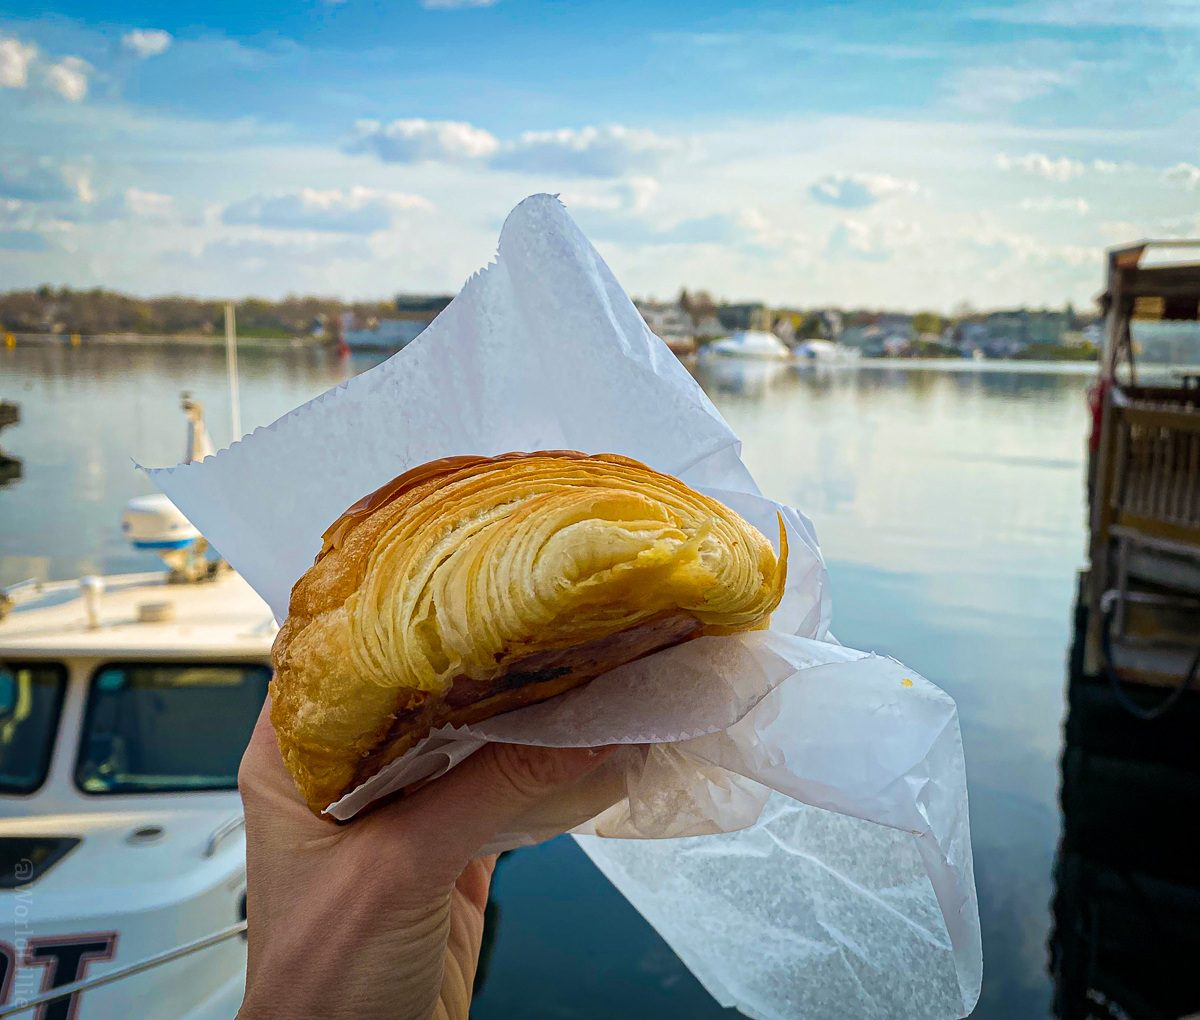 Eating a croissant from Elephantine at the Portsmouth, NH harbor.